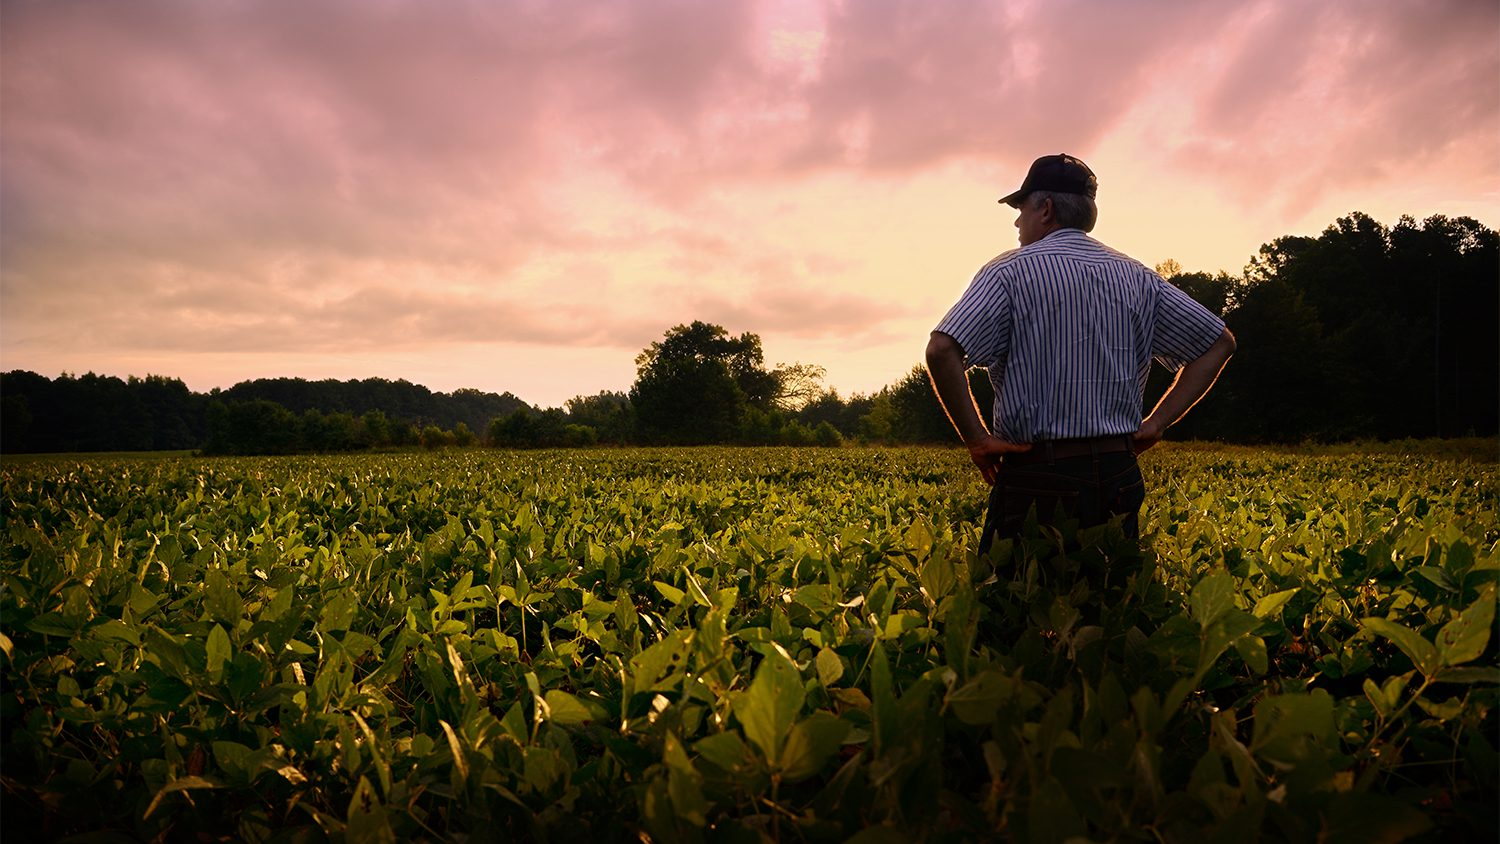 Farmer standing in soybean field.